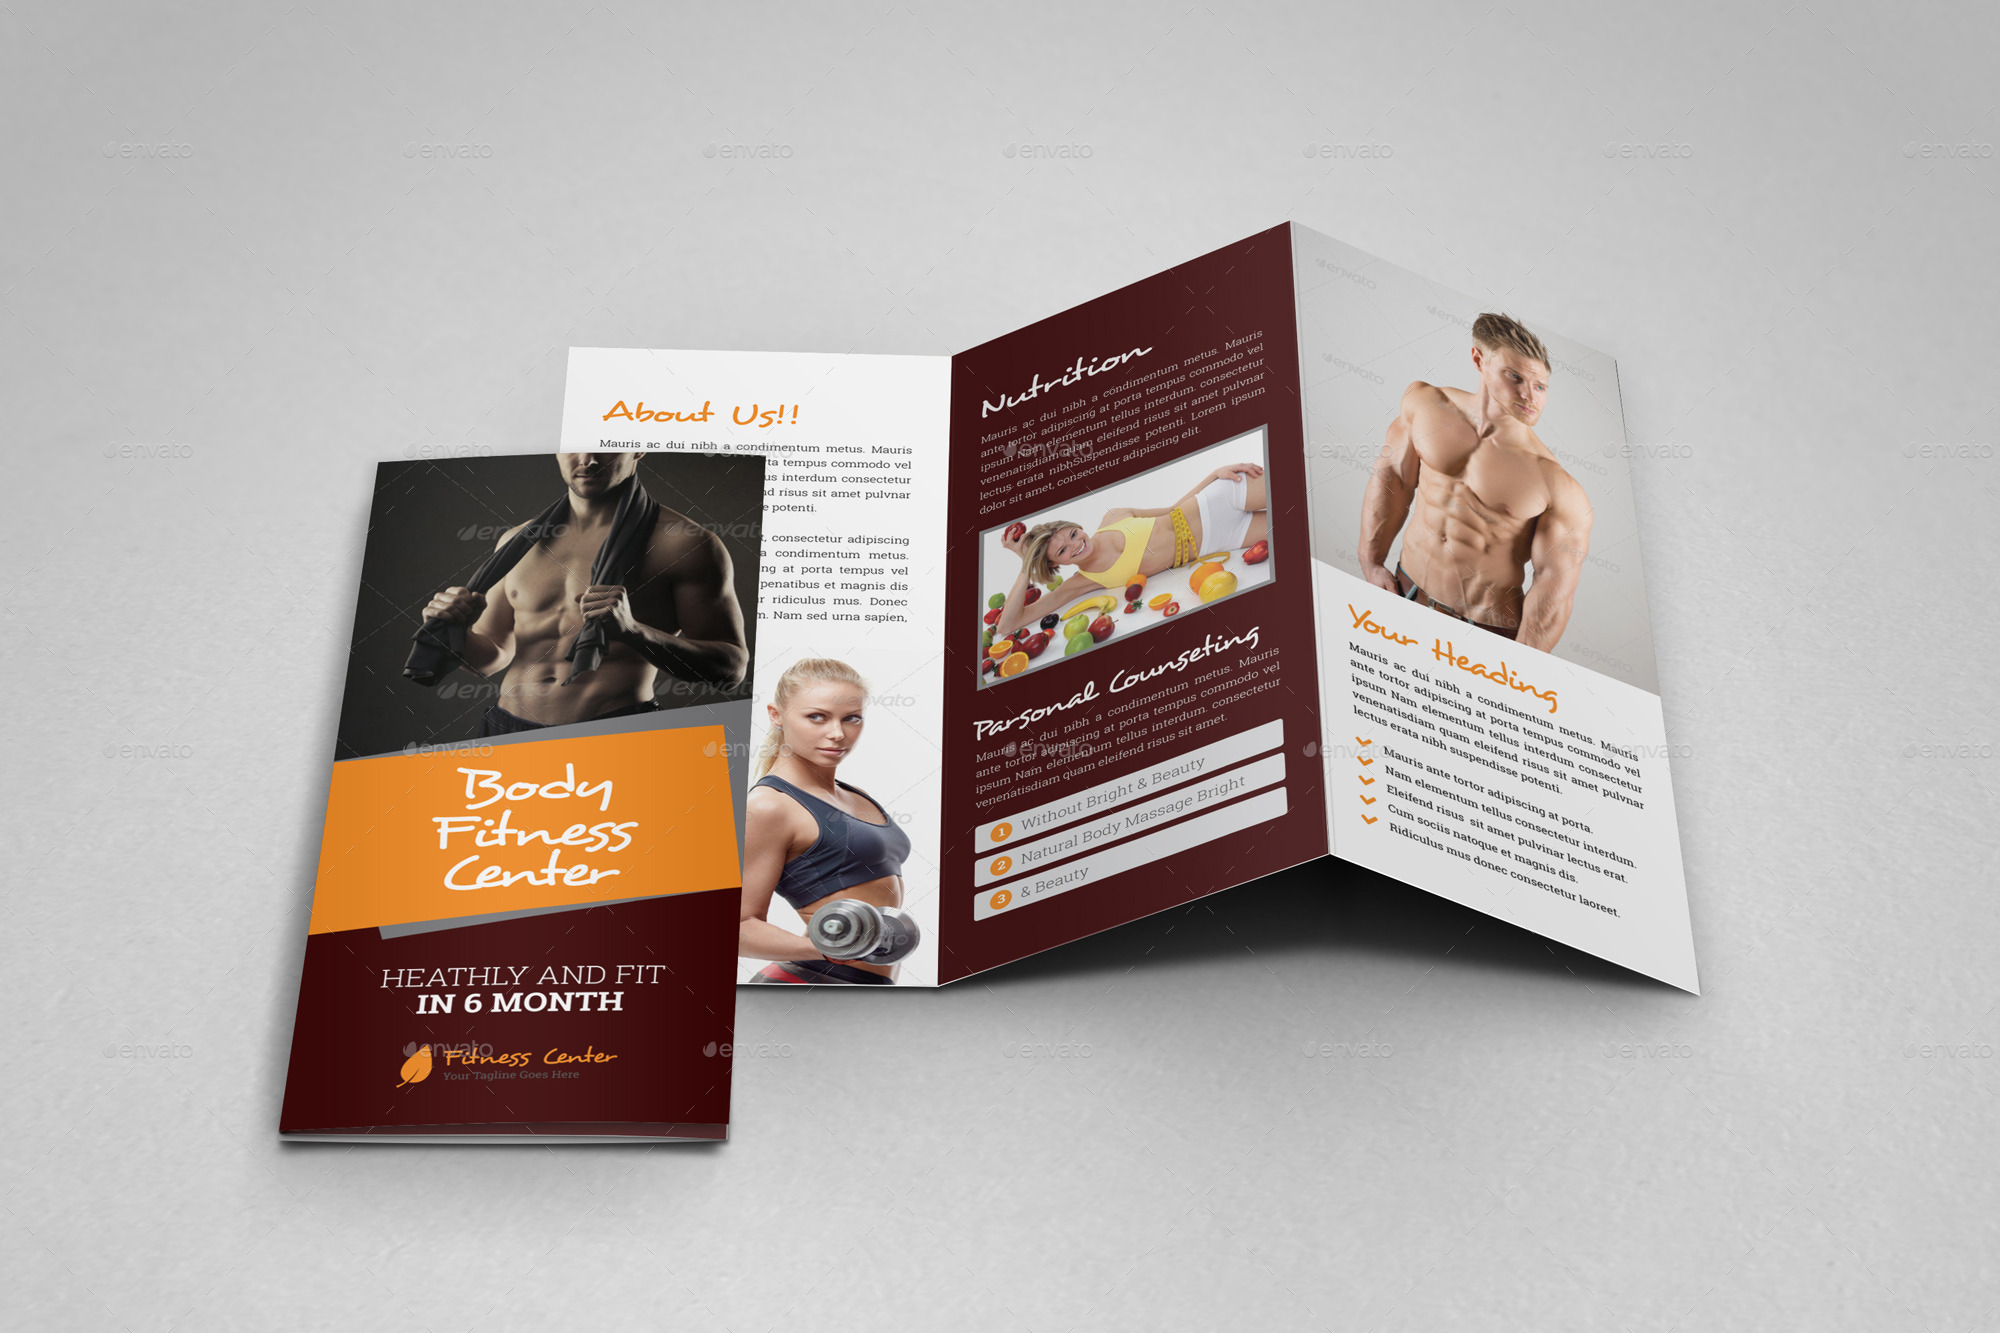 Gym Fitness Trifold Brochure Indesign Template By JanySultana - Indesign templates brochure